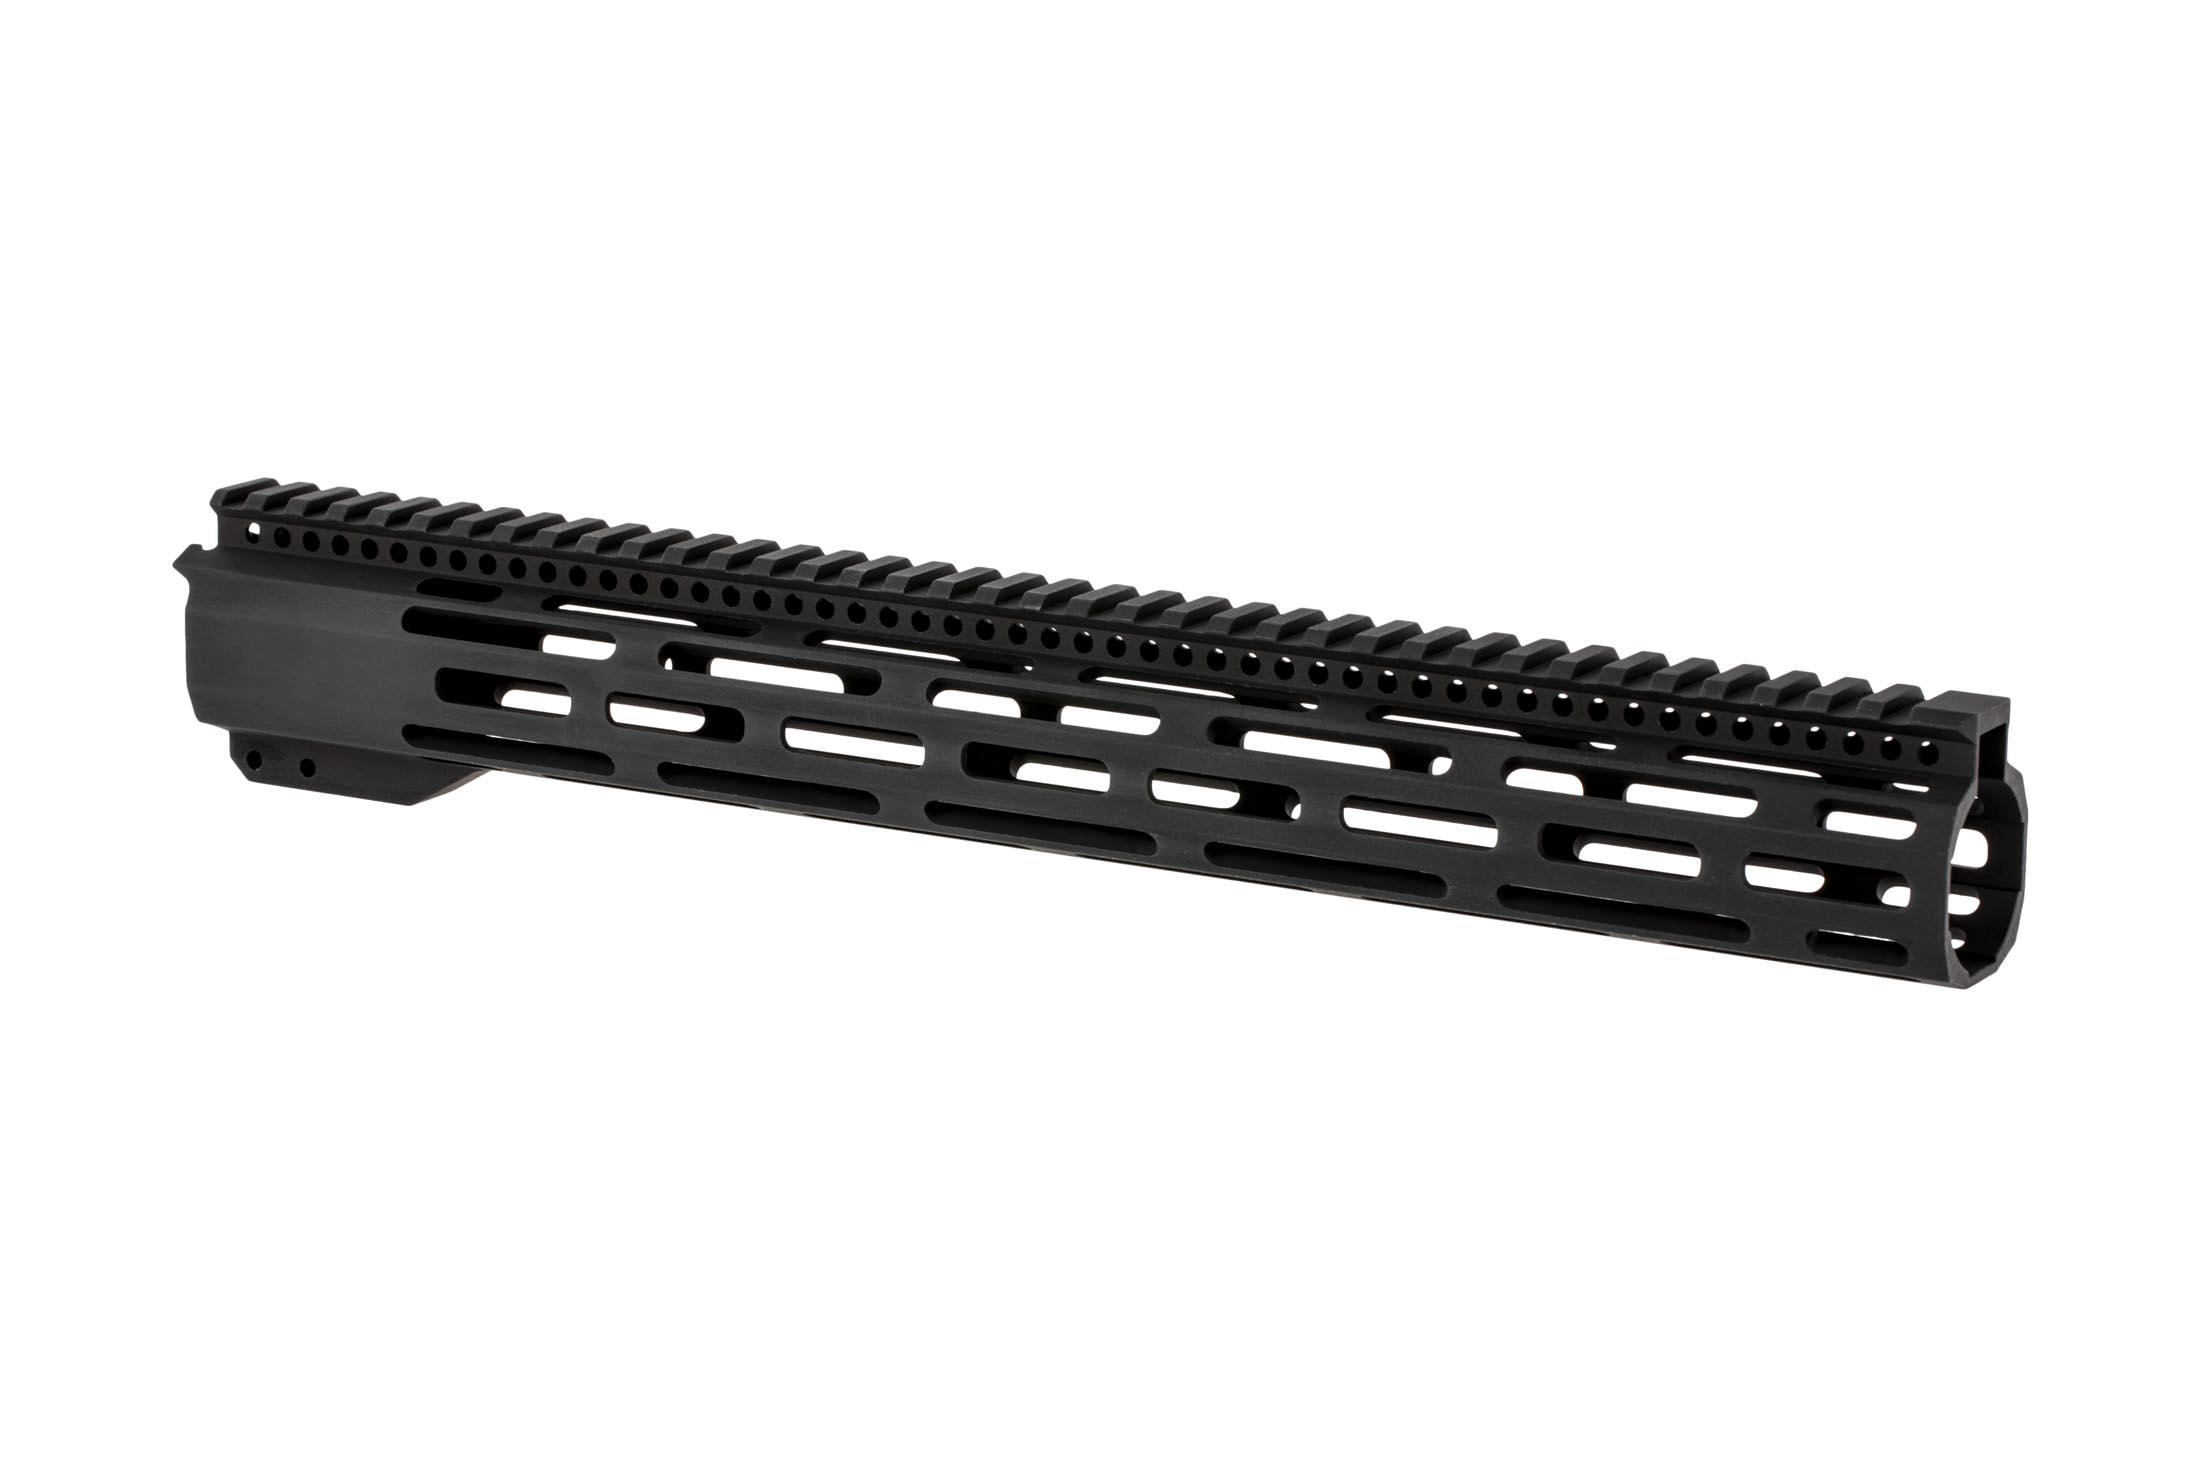 Radical Firearms 3rd generation free float FCR M-LOK handguard for the AR-15 is 15 long to cover mid-length gas systems